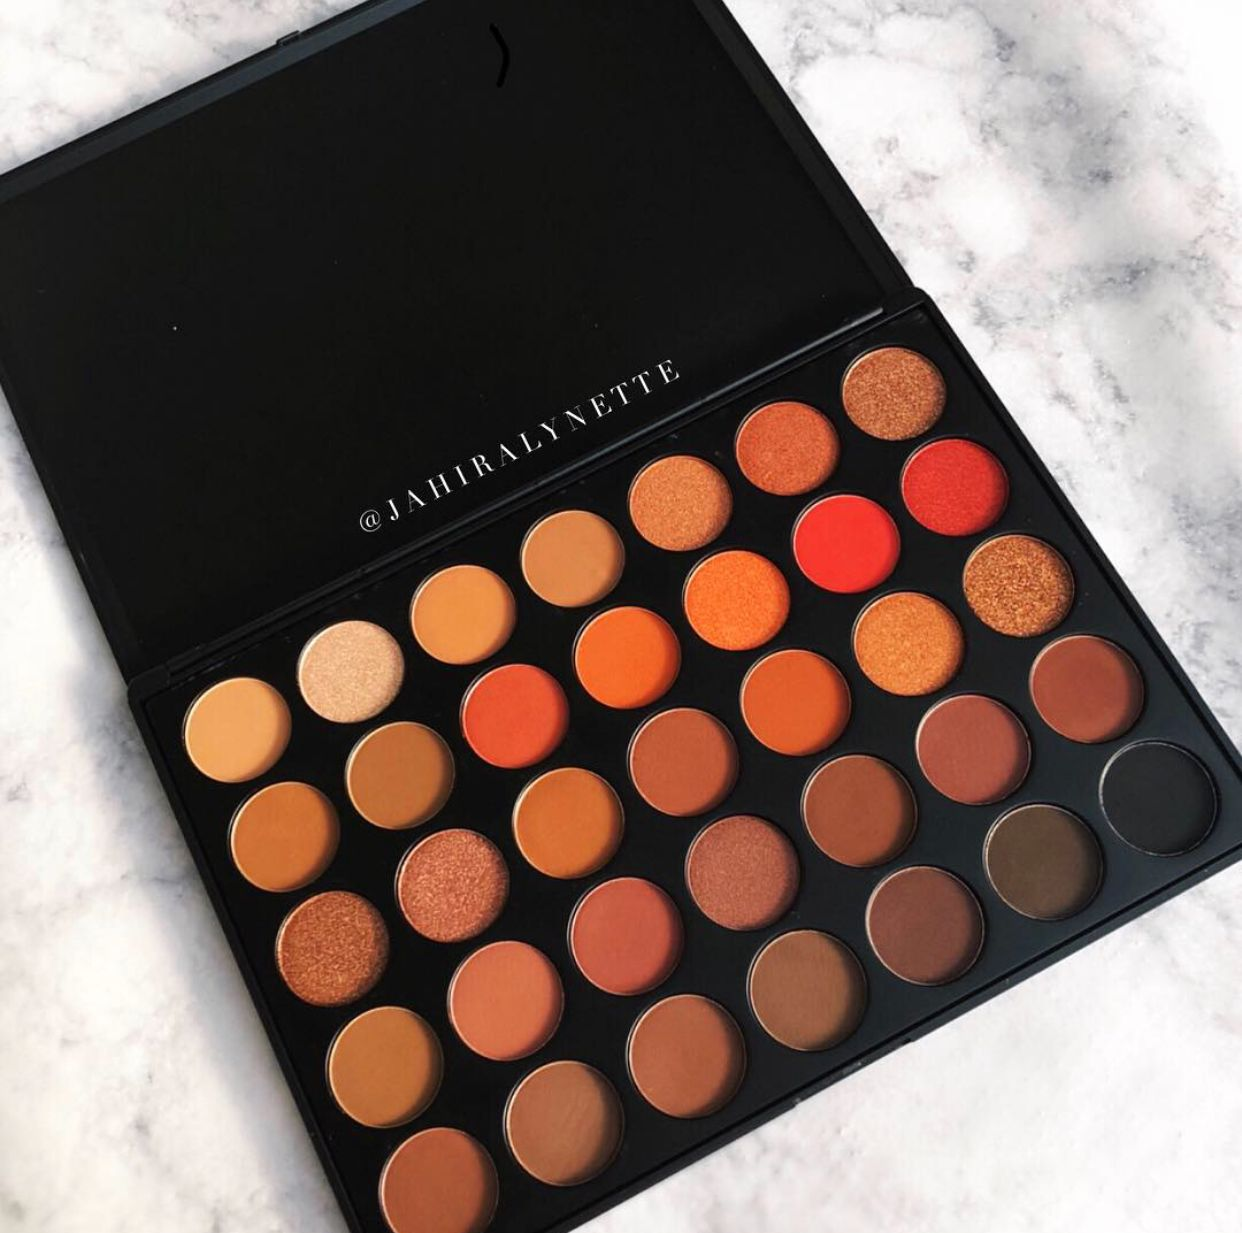 IG this is the Morphe 35O2 palette